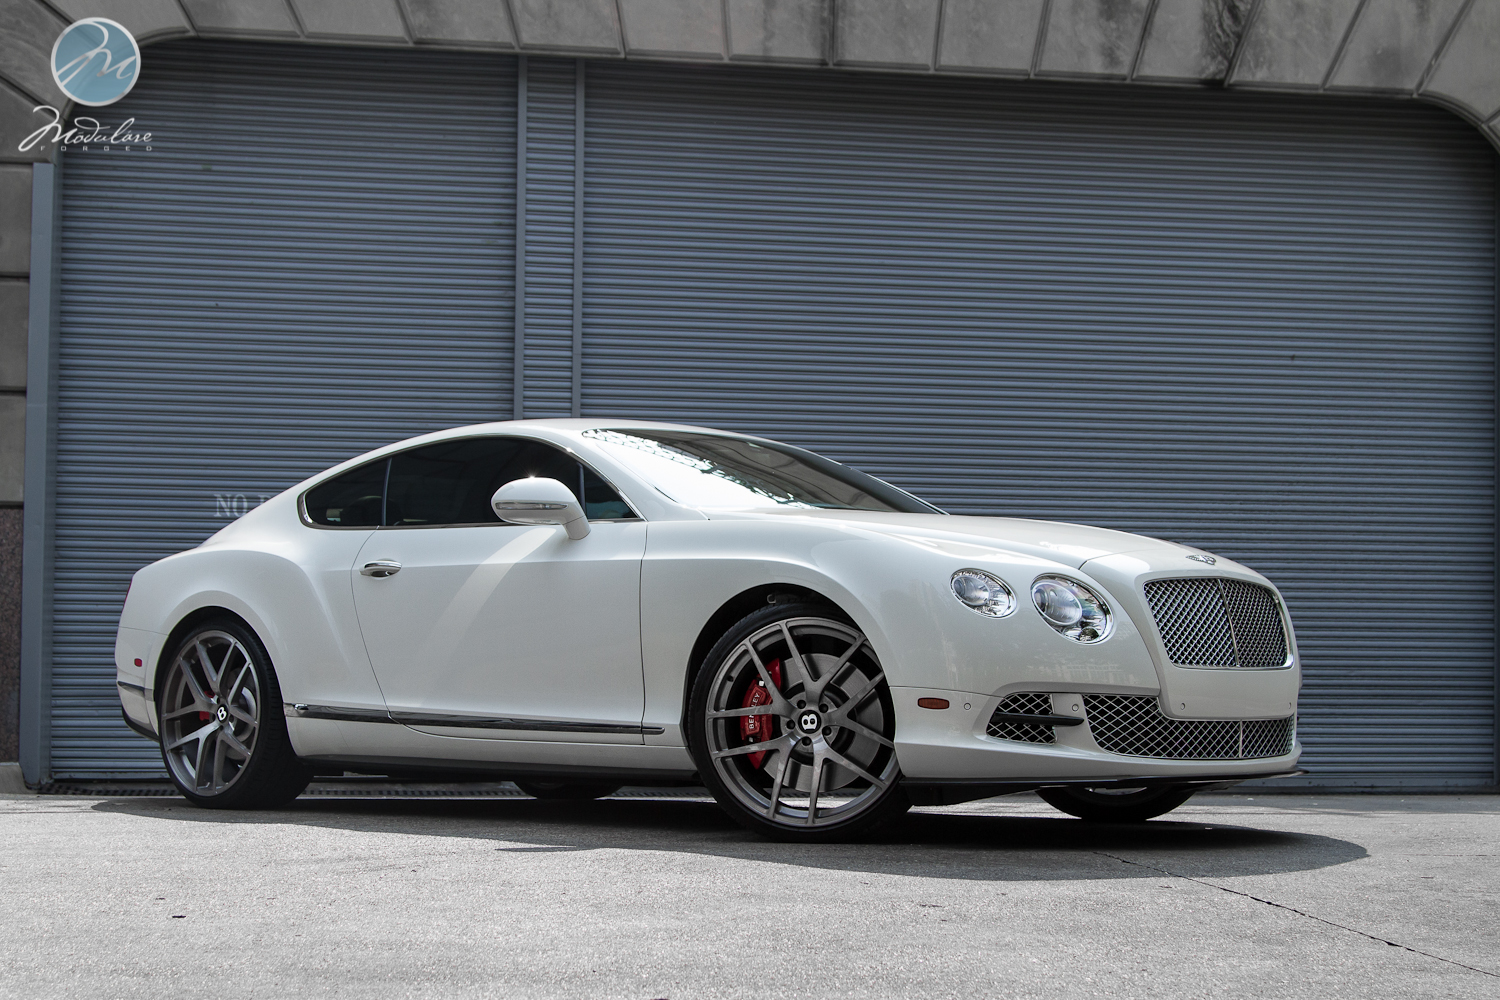 Bentley Continental Gt On 22 Inch Modulare Wheels